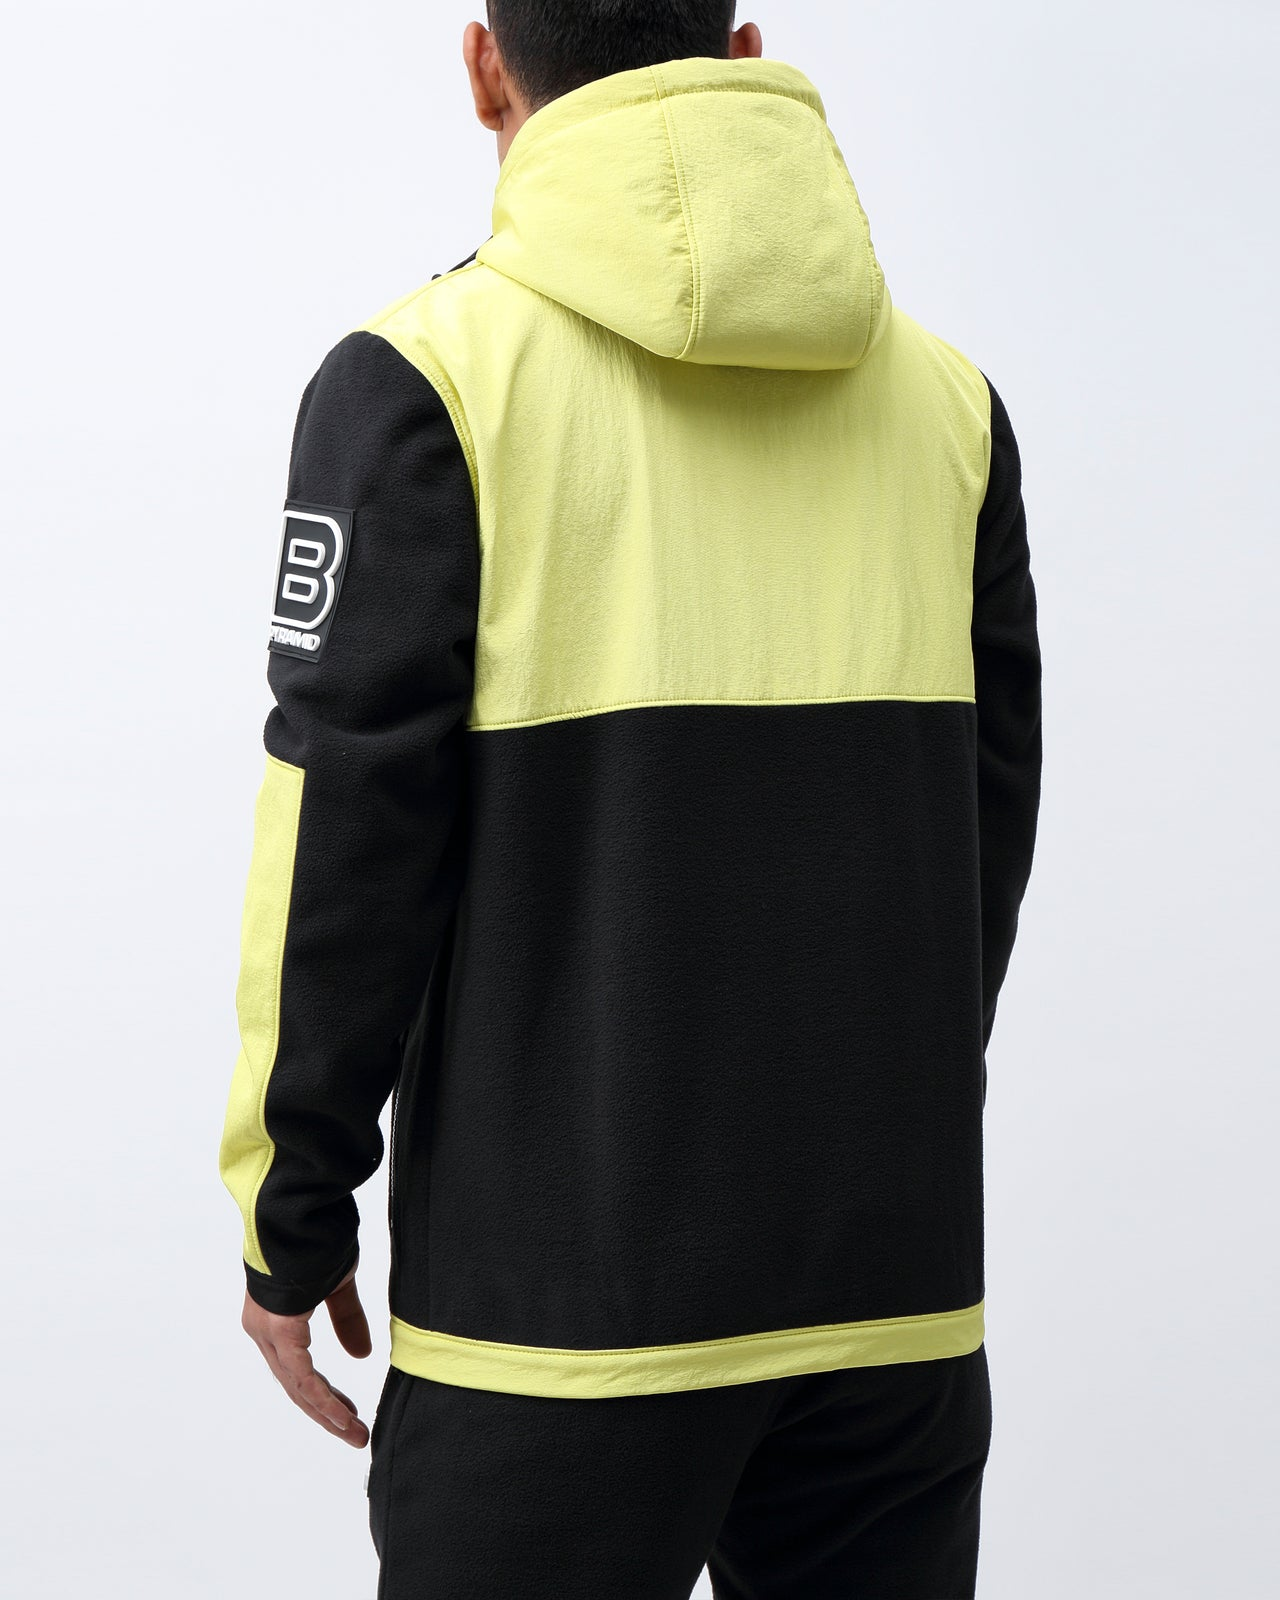 BP POLAR FLEECE JACKET - Color: YELLOW